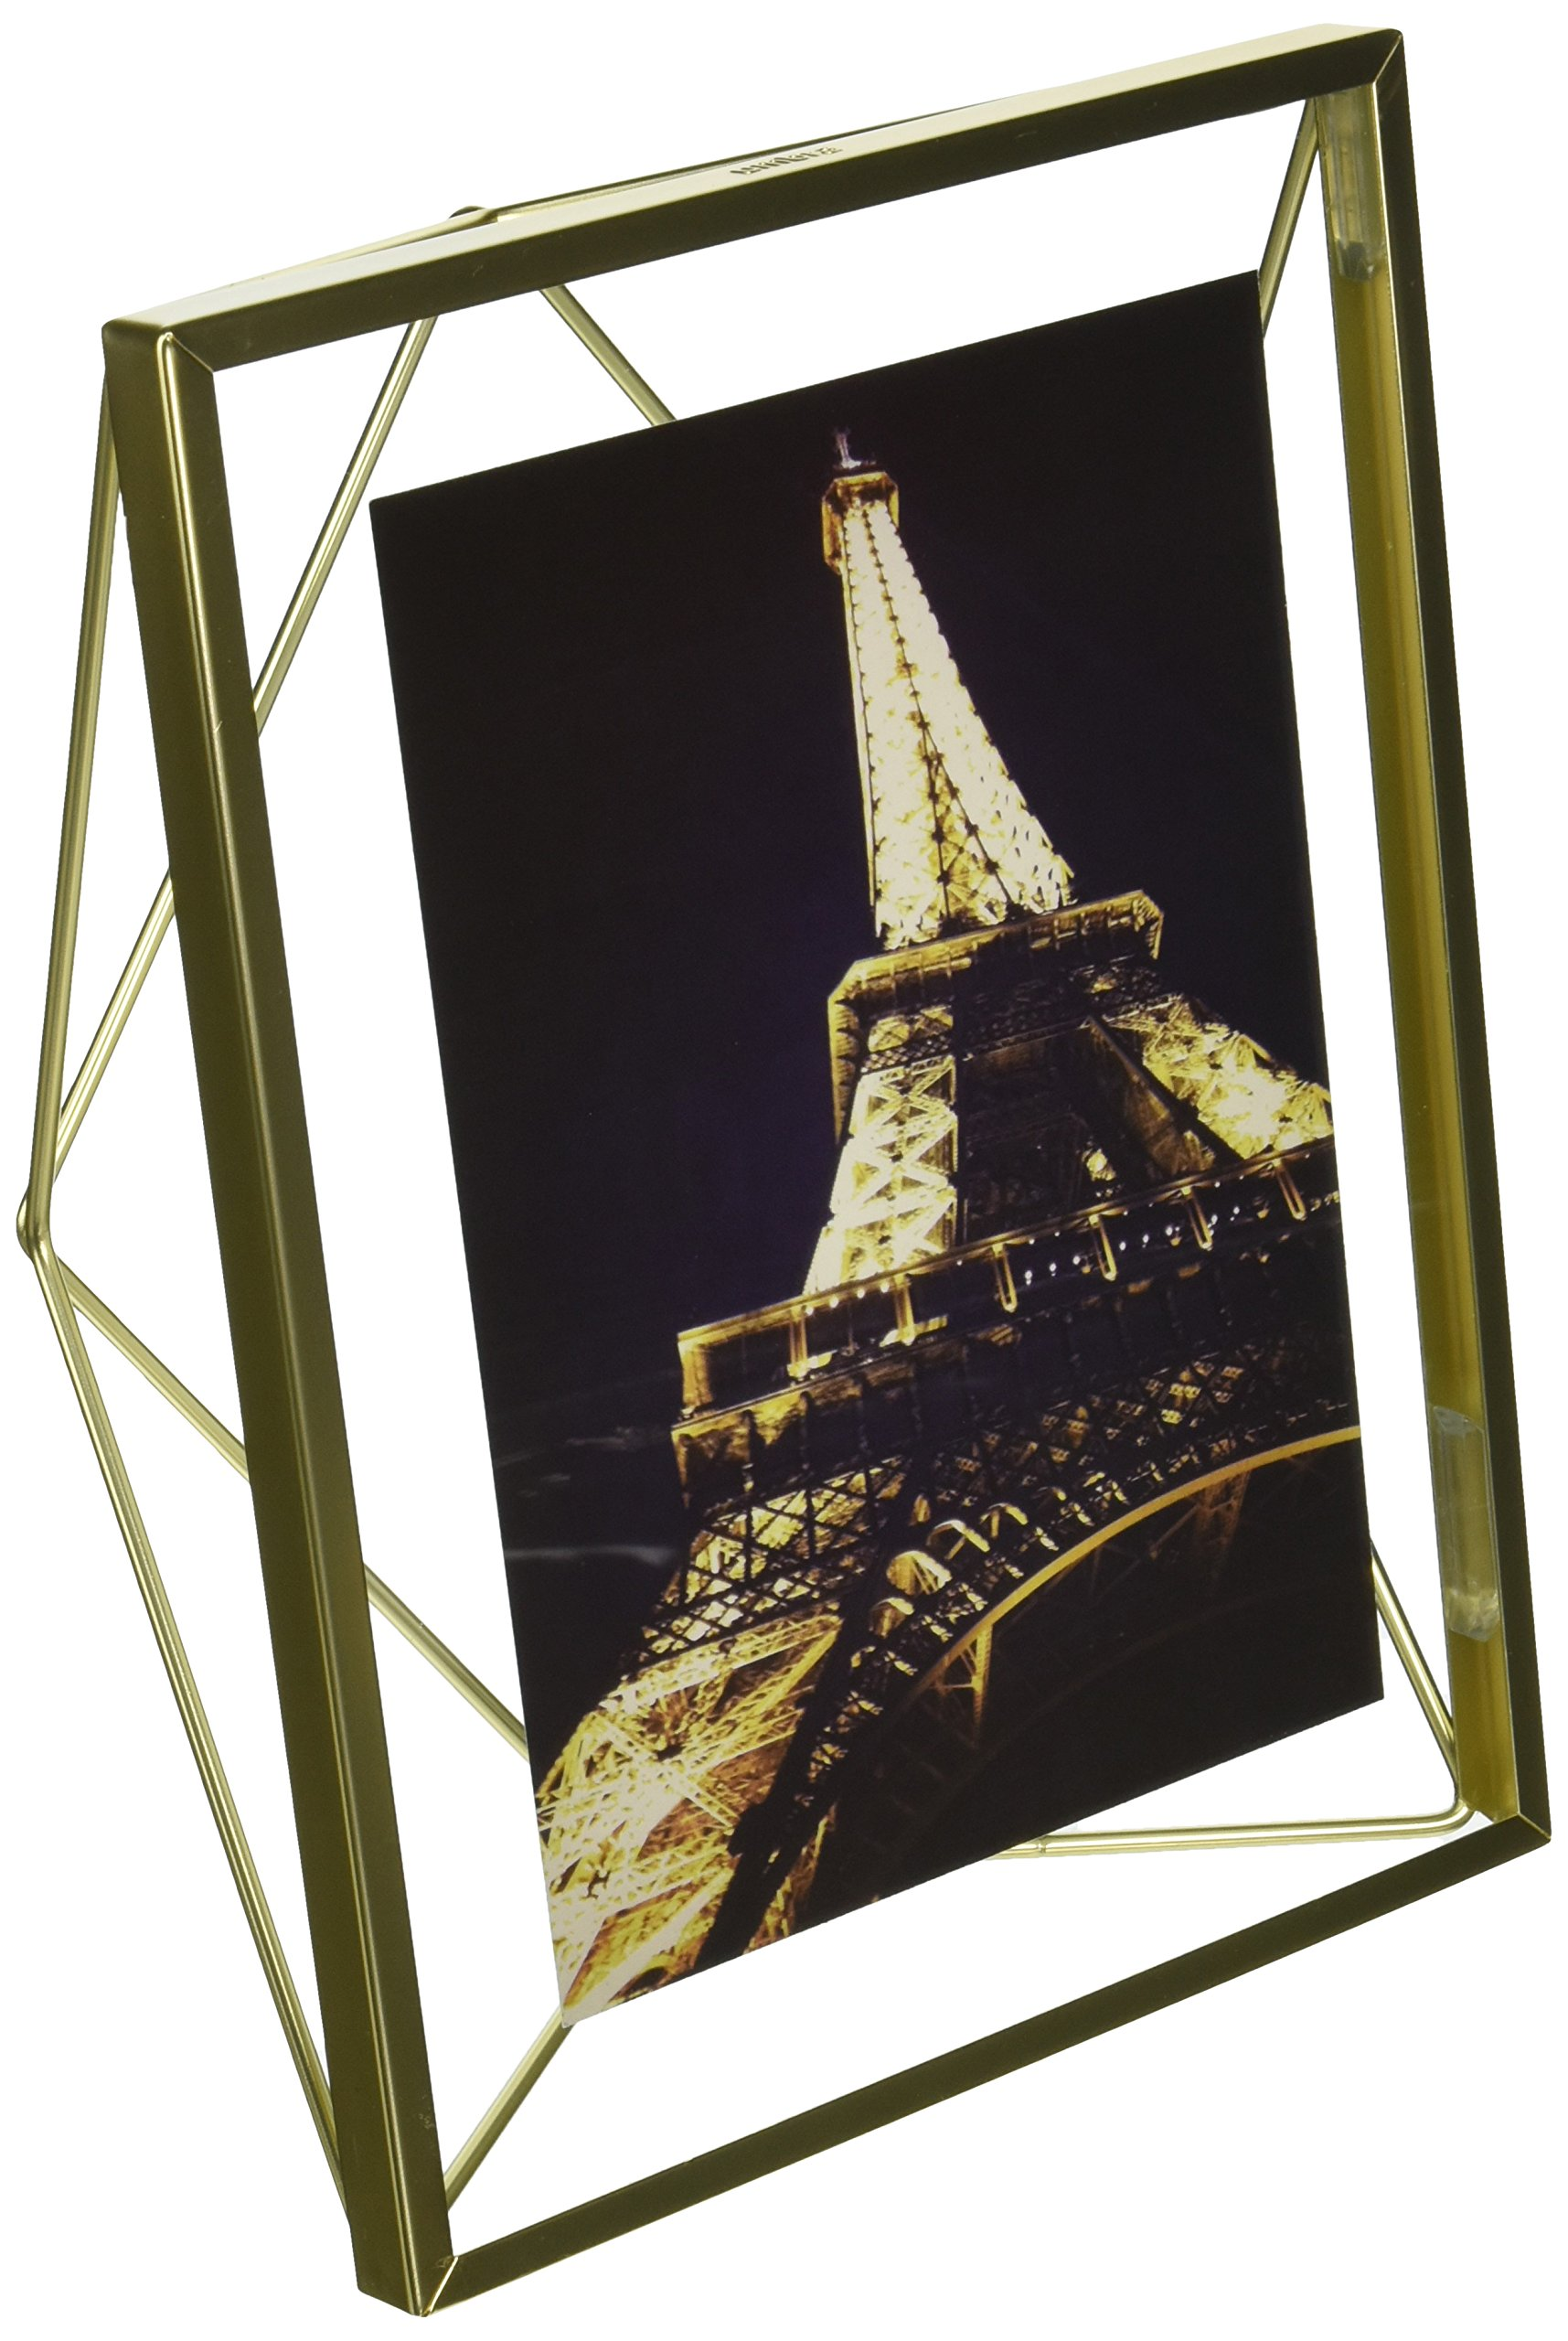 Umbra Prisma 5 x 7 Picture Frame – Floating Wall or Desk Photo Display for Pictures, Art, Illustrations, Graphic Text & More, Metal, Matte Brass by Umbra